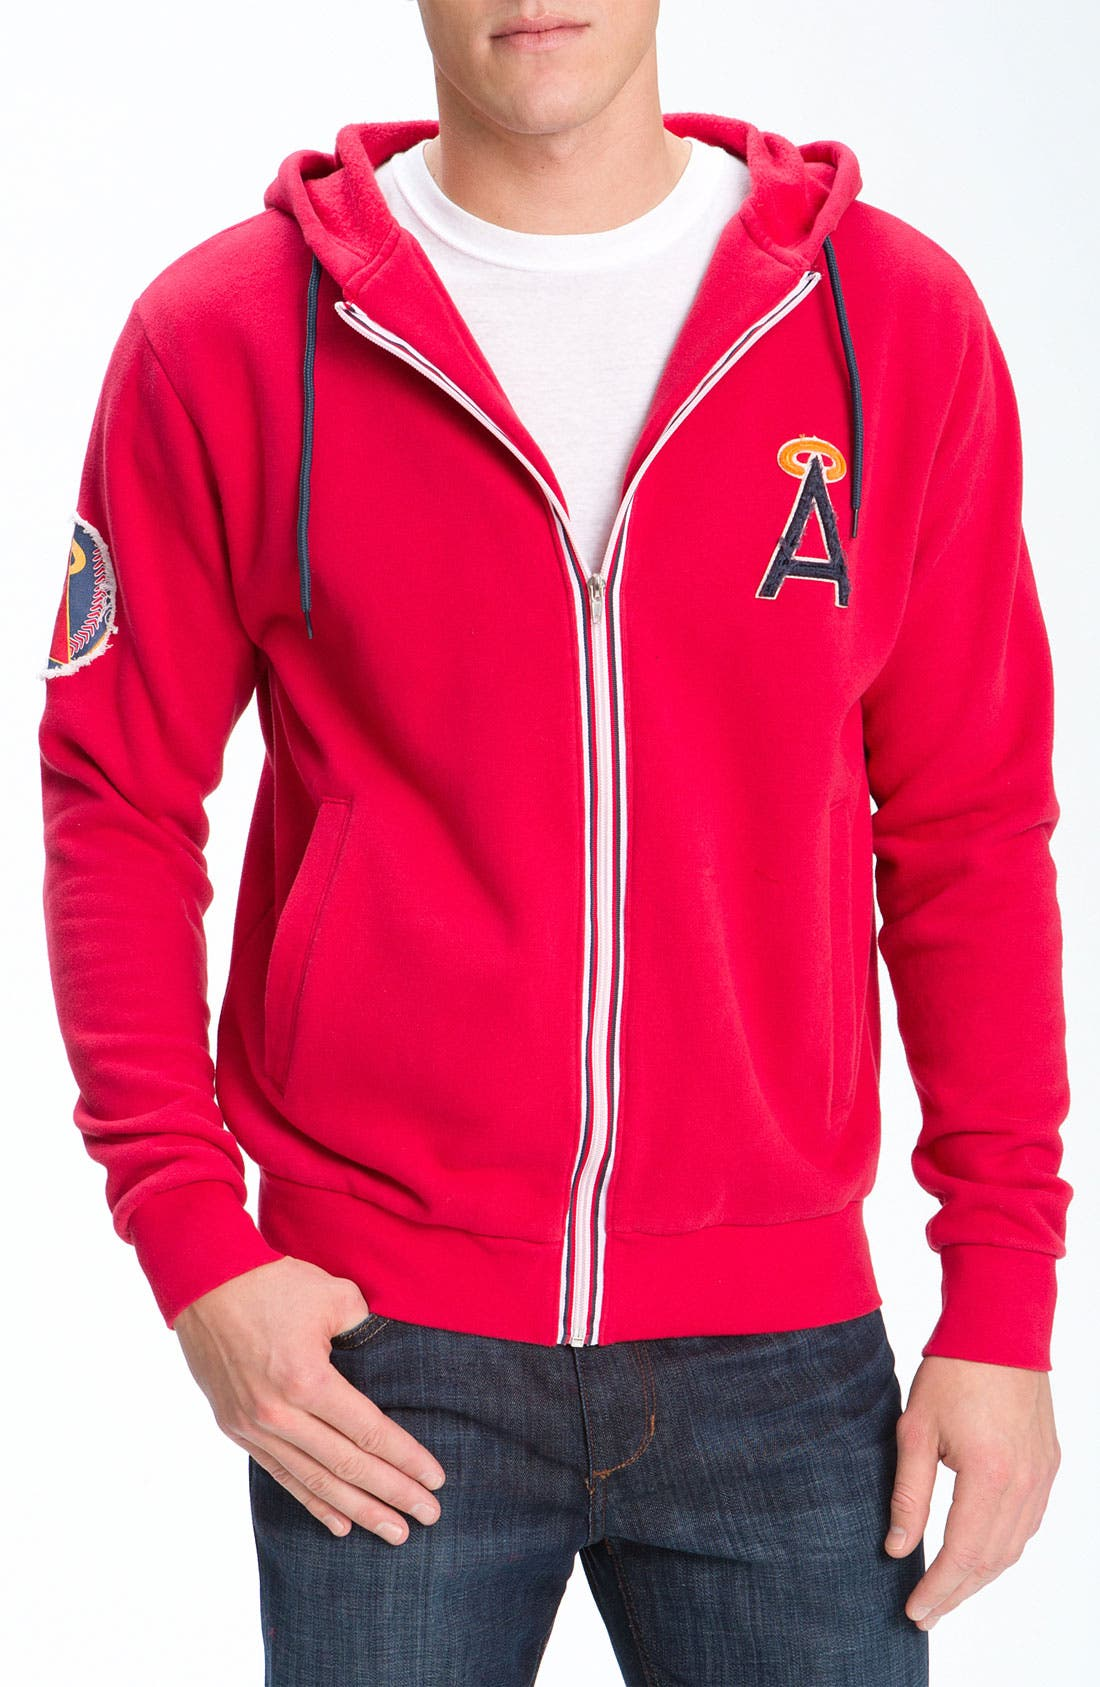 Main Image - Wright & Ditson 'Los Angeles Angels of Anaheim' Hoodie